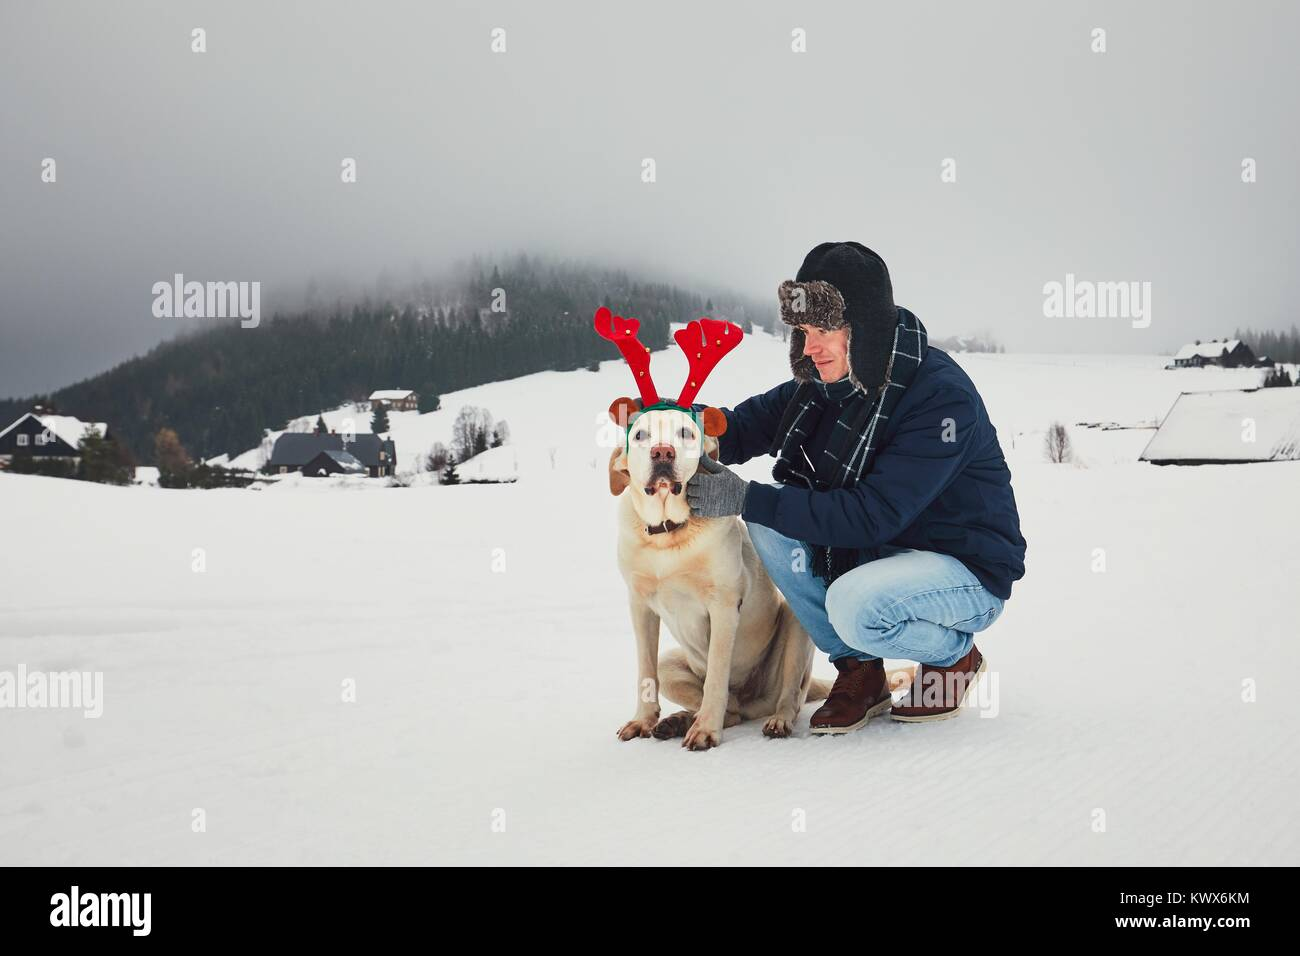 Funny walk with dog in the snowy landscape. Labrador retriever is wearing fake reindeer antlers. Winter season in - Stock Image